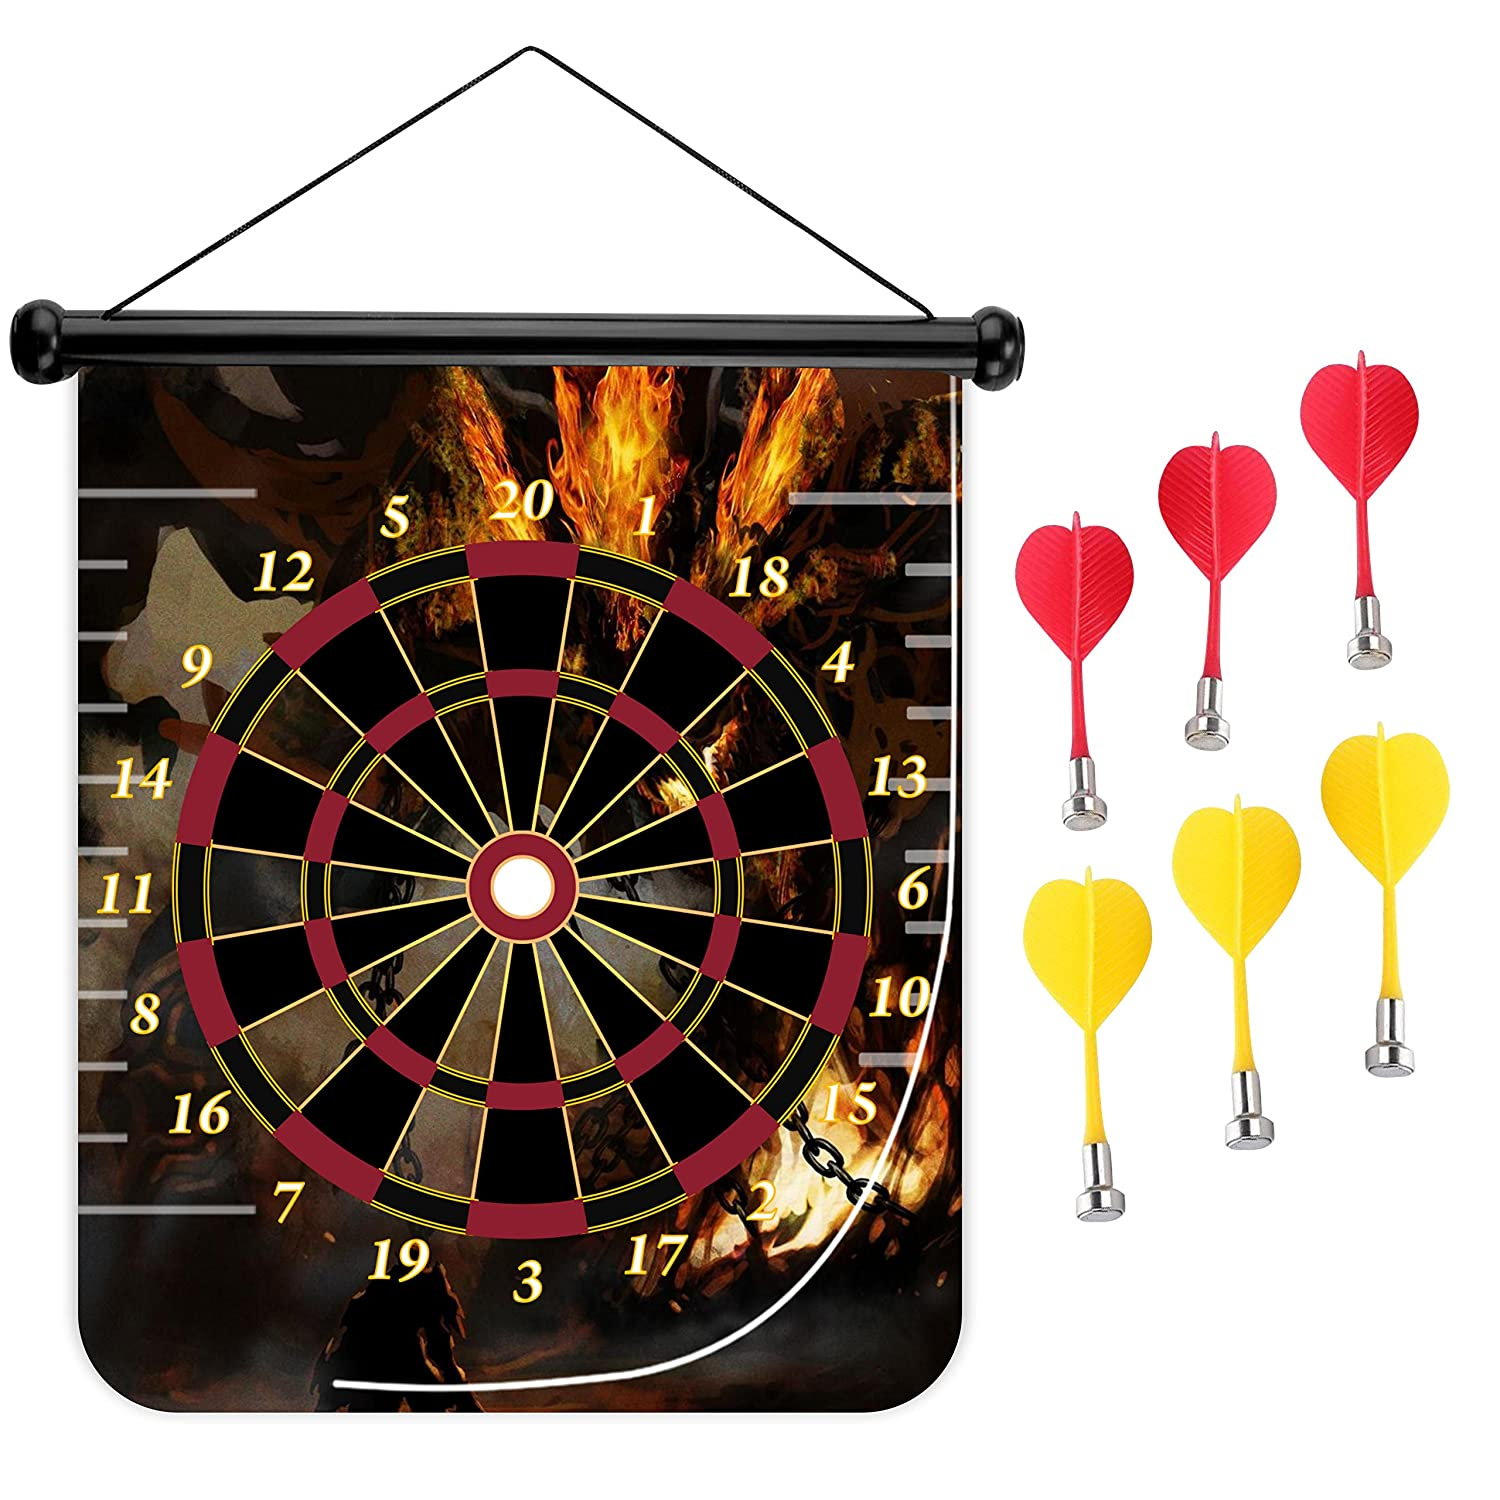 15インチMagnetic Dart Board Double Sided Hanging Dart Board Set and Bullseyeゲーム。ディアブロ B079M92PV3